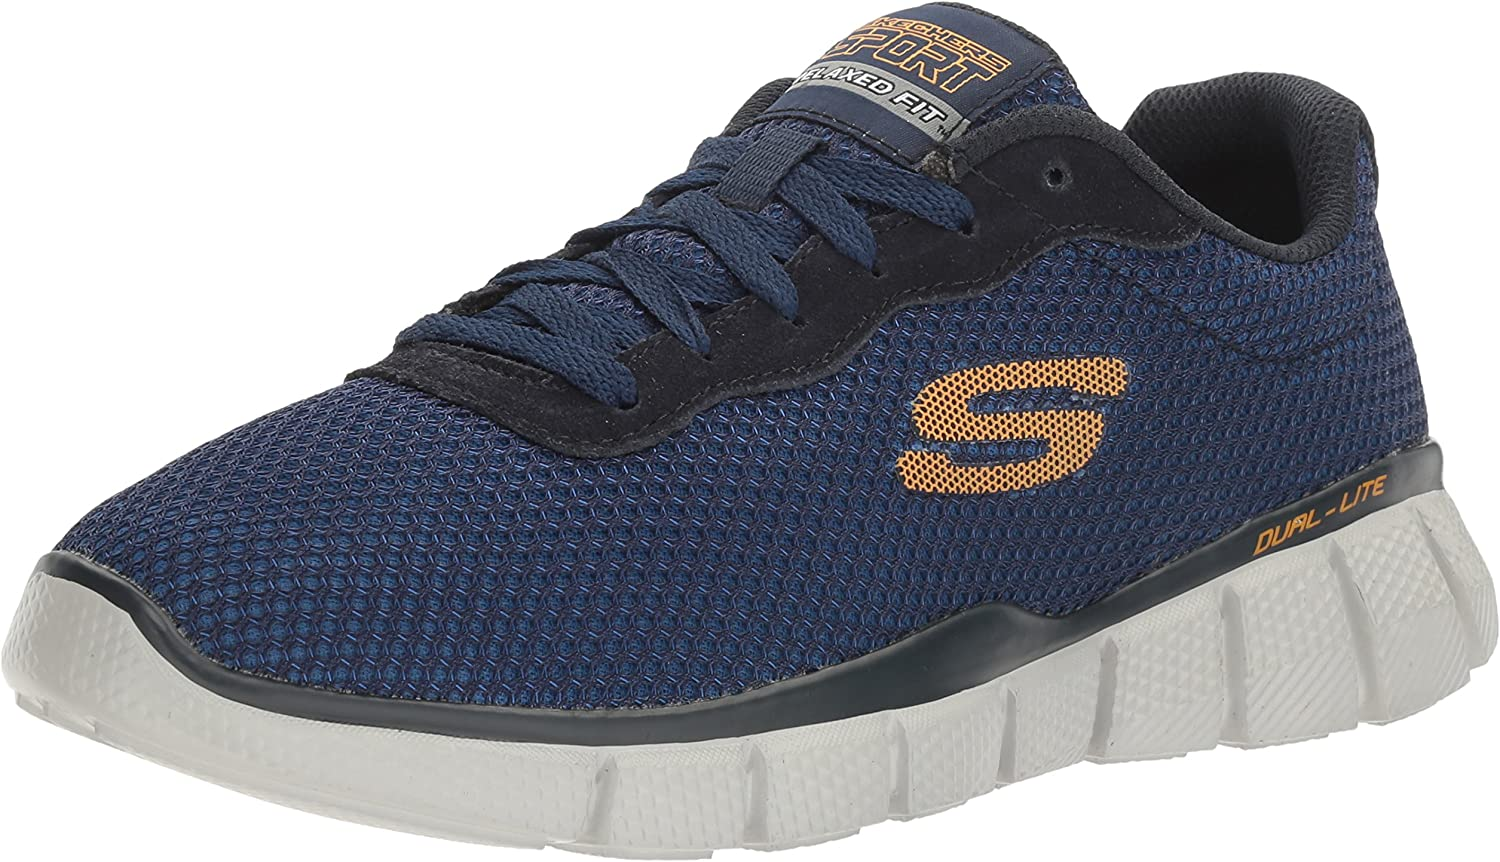 Skechers Mens Equalizer 2.0 Arlor Oxford